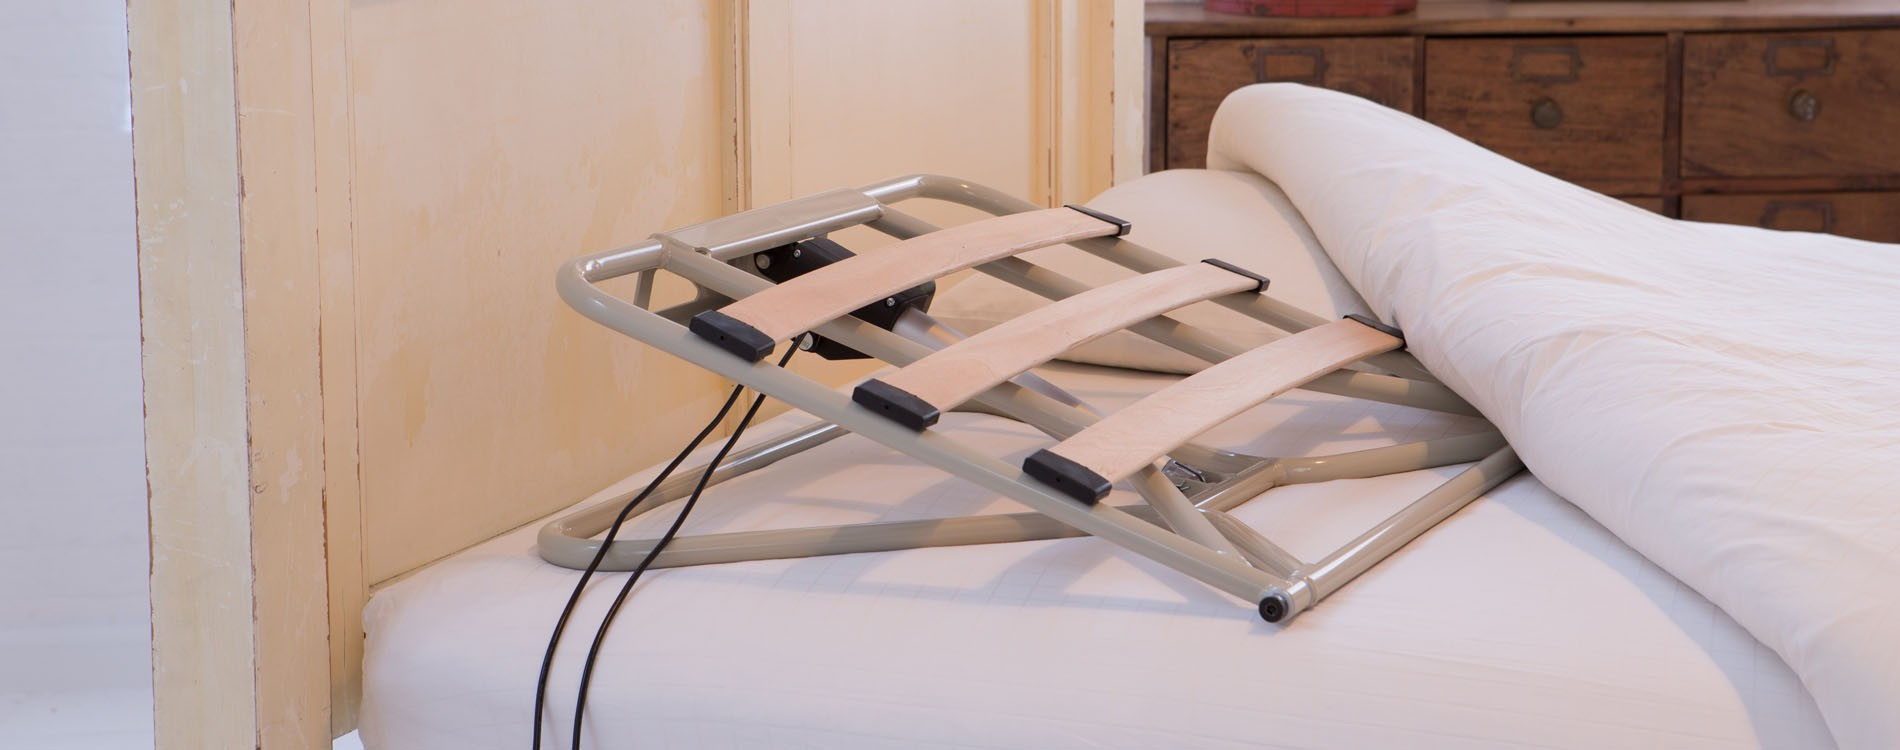 Portable electric recliner